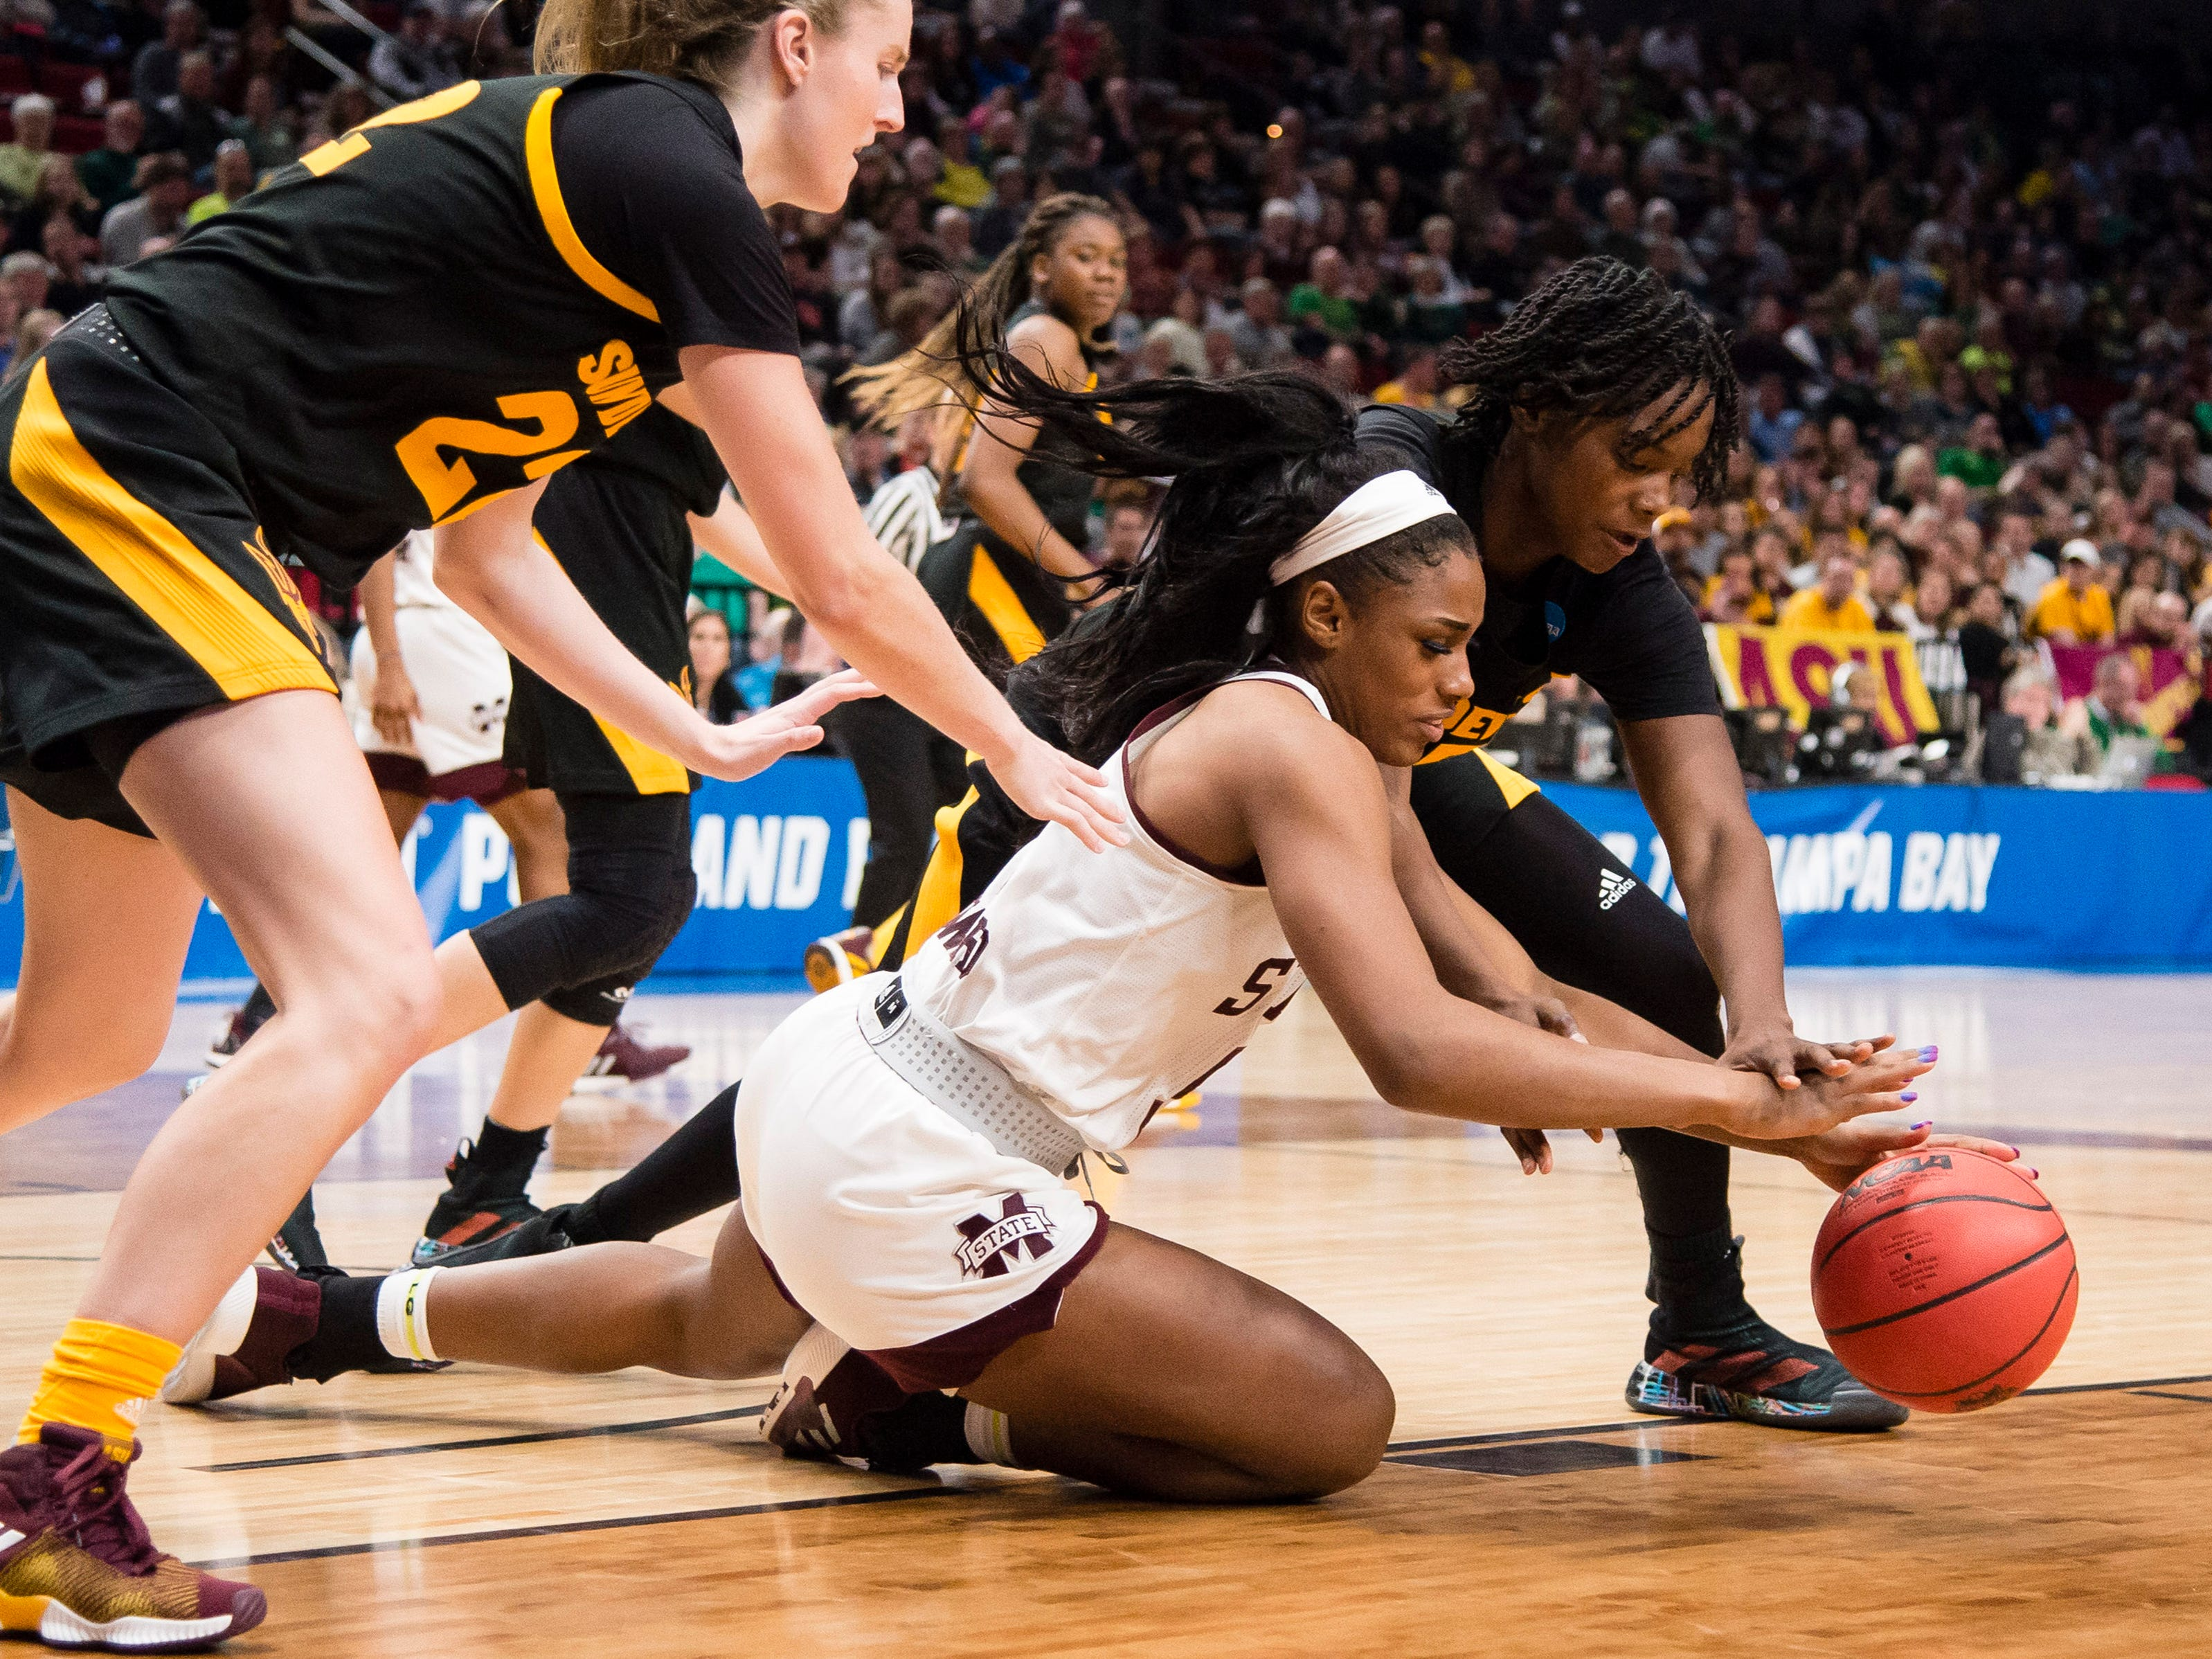 Mar 29, 2019; Portland, OR, USA; Mississippi State Bulldogs forward Anriel Howard (5) scrambles against Arizona State Sun Devils center Charnea Johnson-Chapman (33) to control the ball during the second half in the semifinals of the Portland regional in the women's 2019 NCAA Tournament at Moda Center. The Mississippi State Bulldogs beat the Arizona State Sun Devils 76-53.